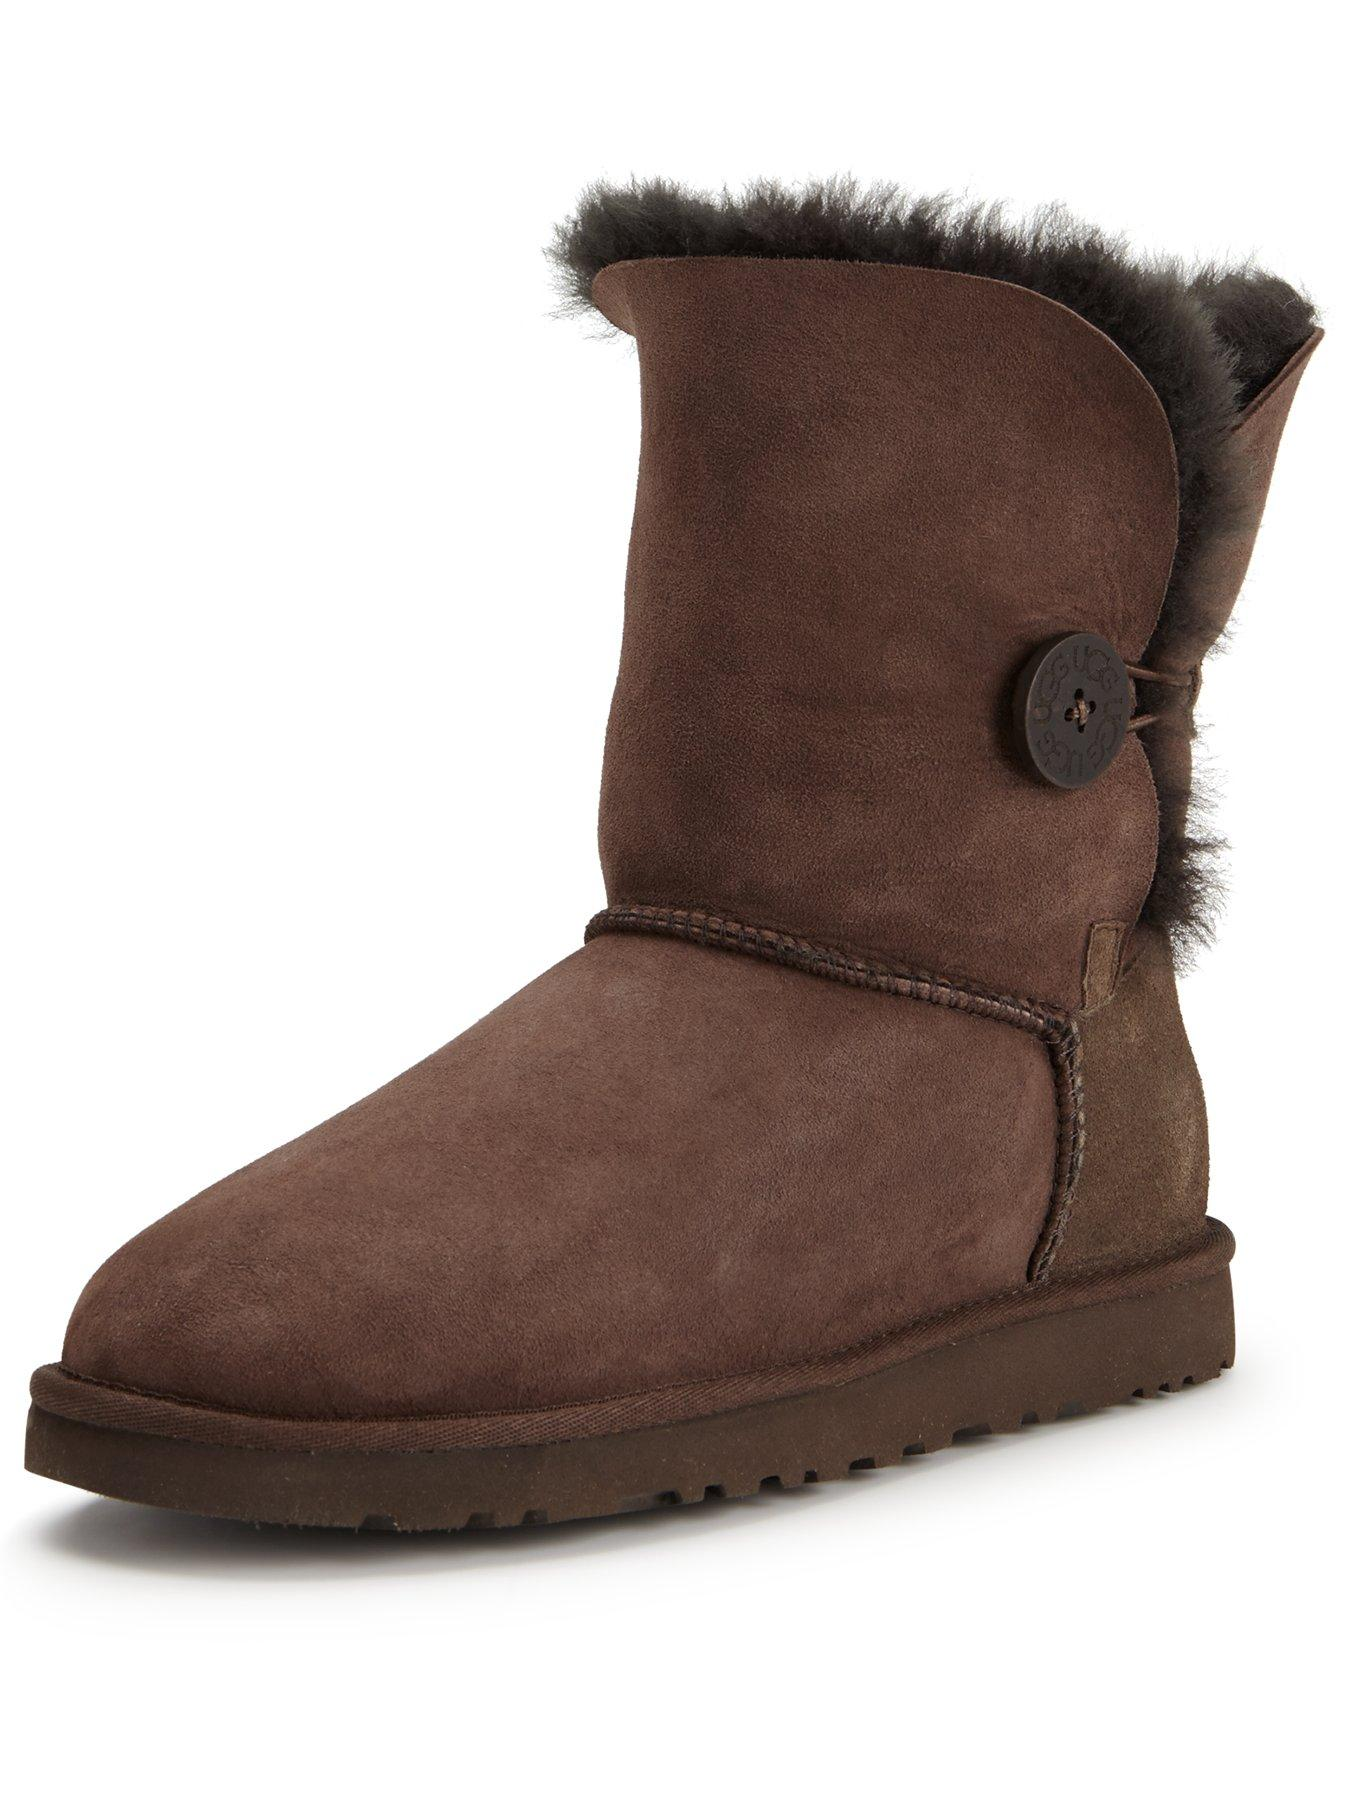 Le Meilleur How To Wear Ugg Moccasins Division Of Global Affairs Ce Mois Ci